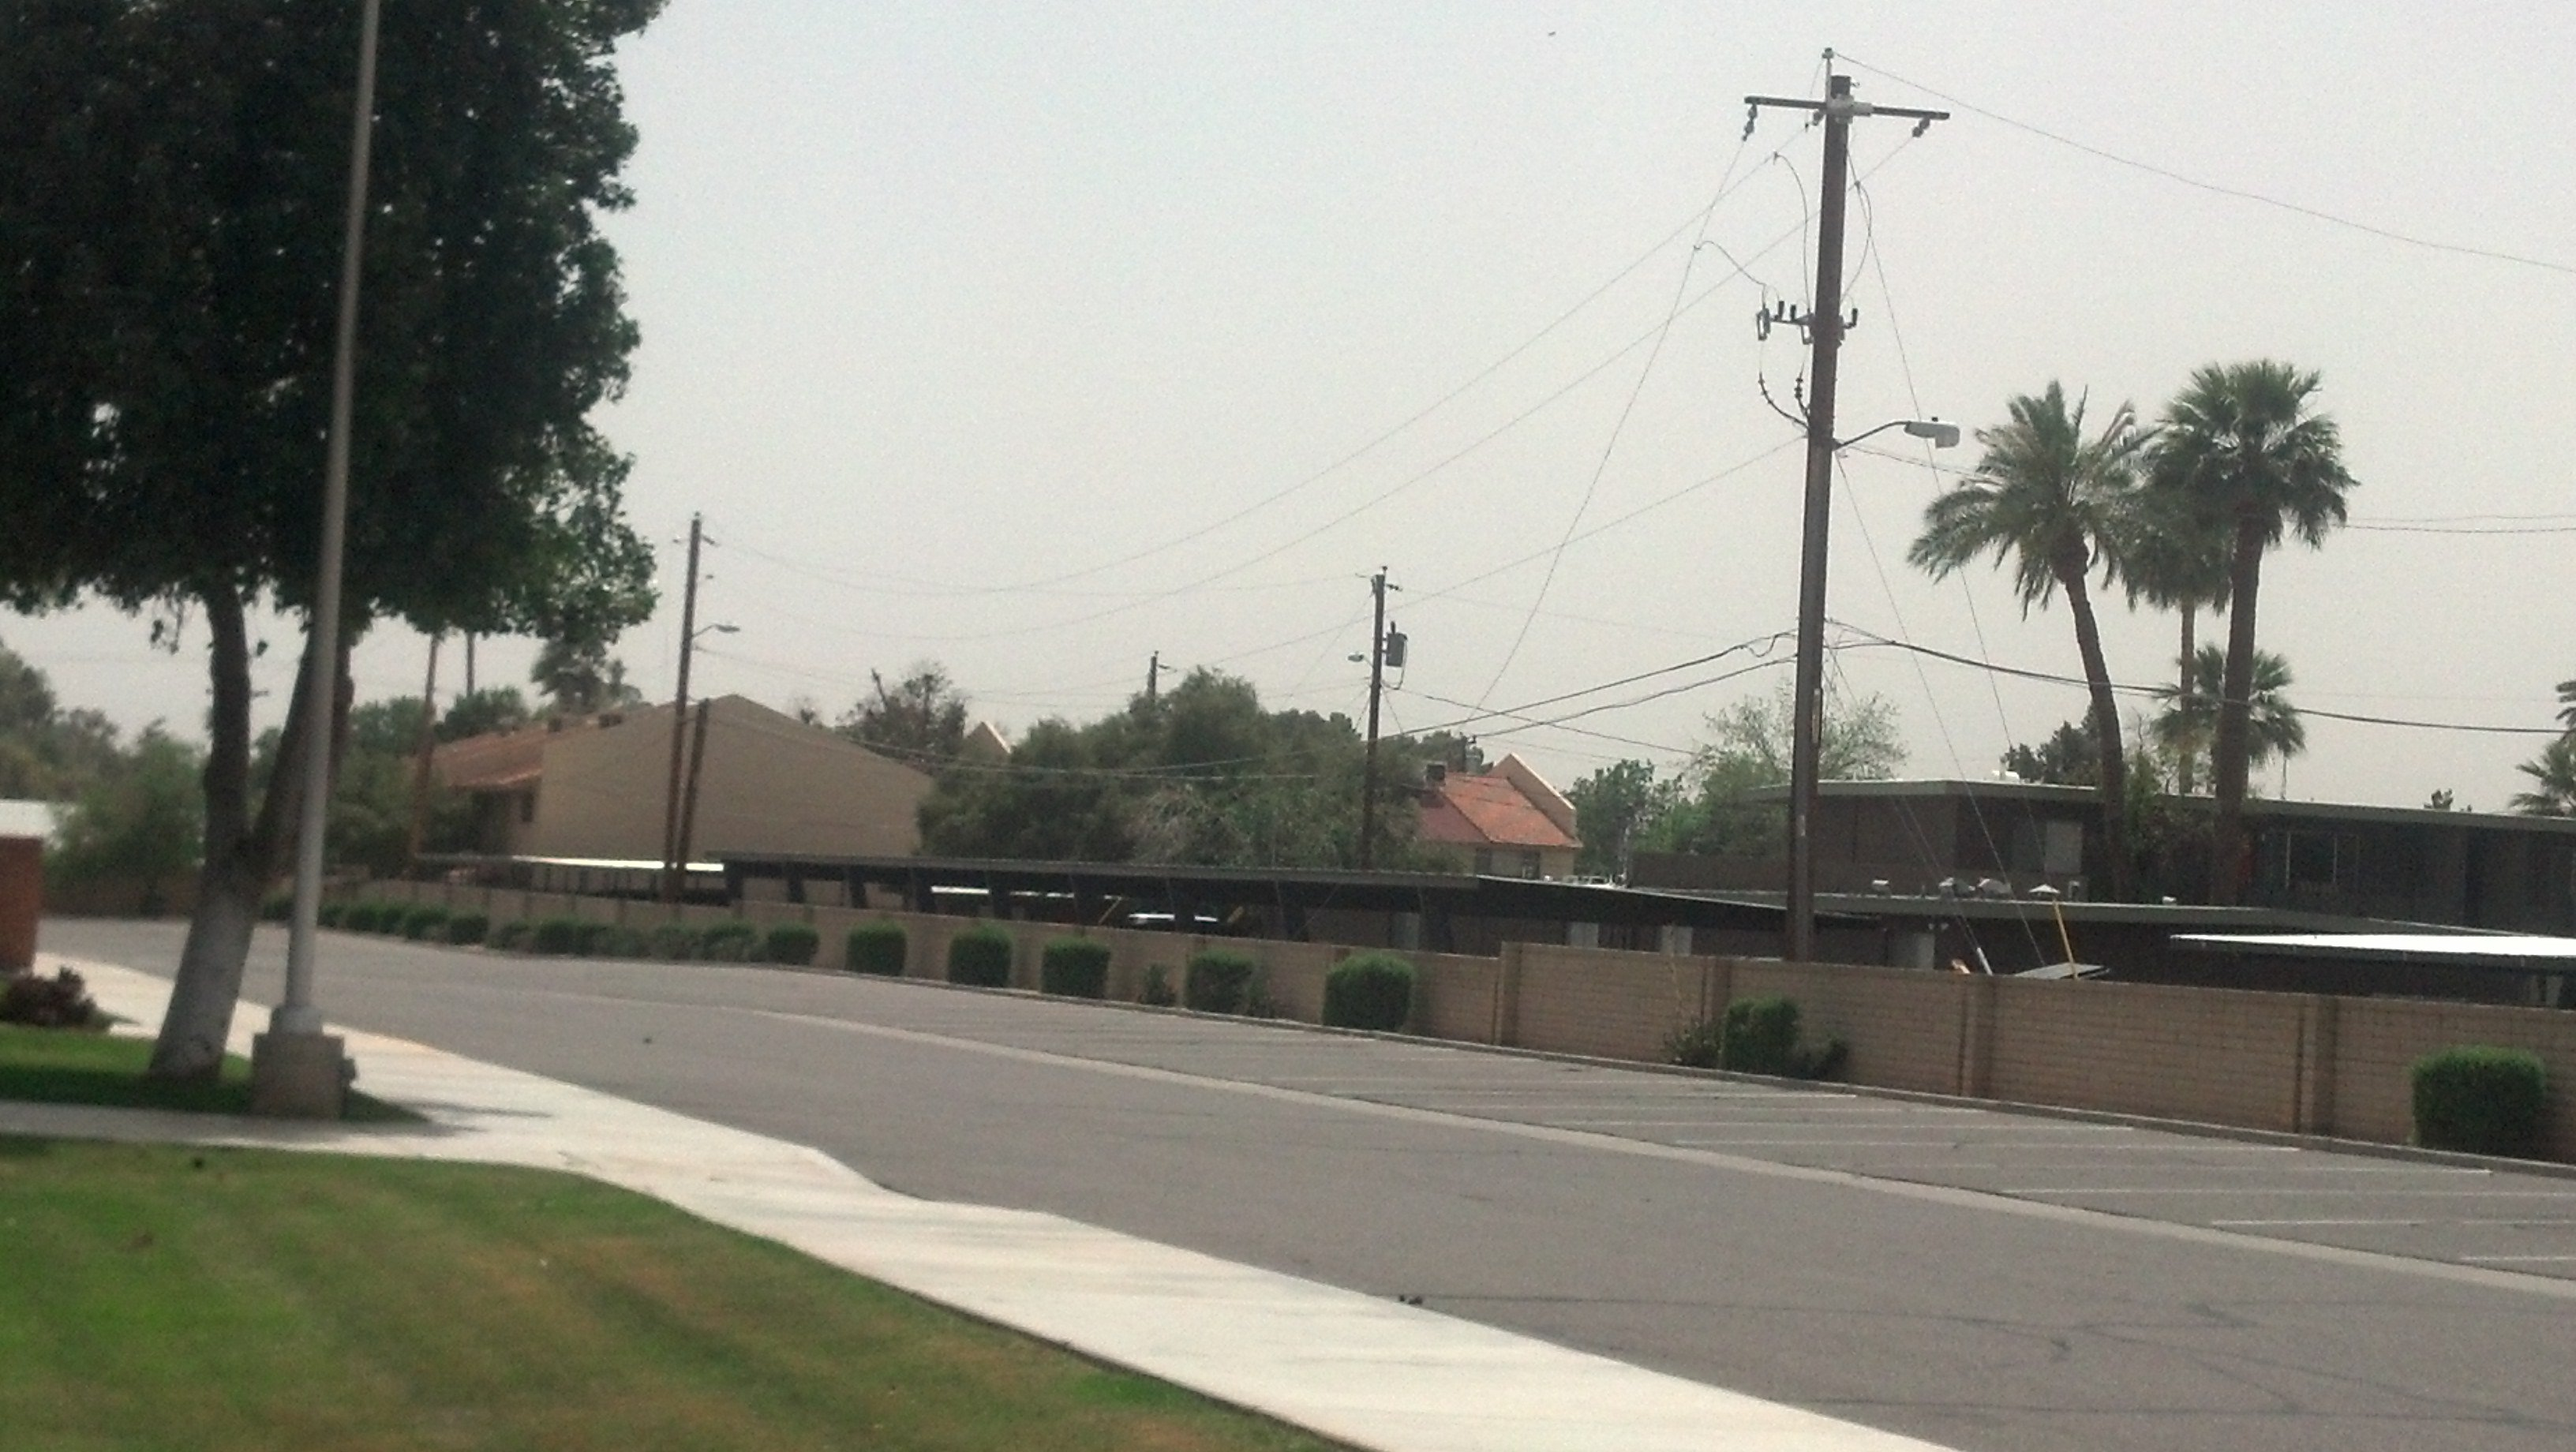 Winds knocked down power lines on 18th Street Monday afternoon. (Source: CBS 5 News, Christina Batson)